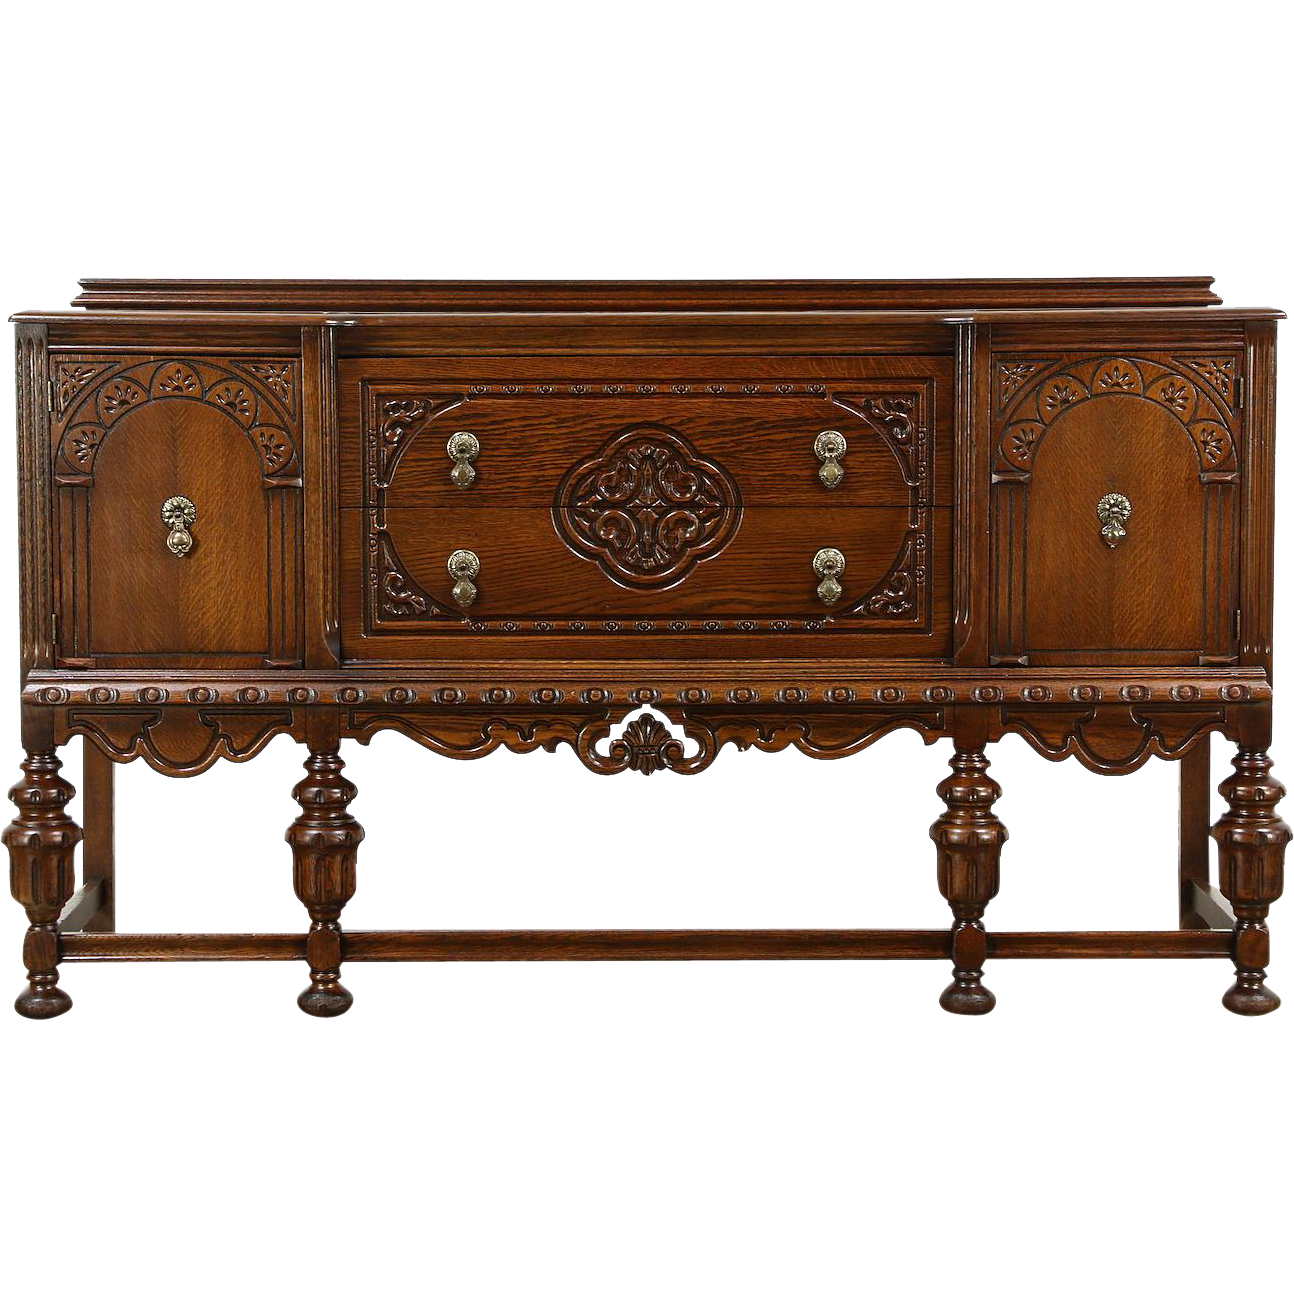 tudor design 1925 antique carved oak sideboard server or buffet from harpgallery on ruby lane. Black Bedroom Furniture Sets. Home Design Ideas